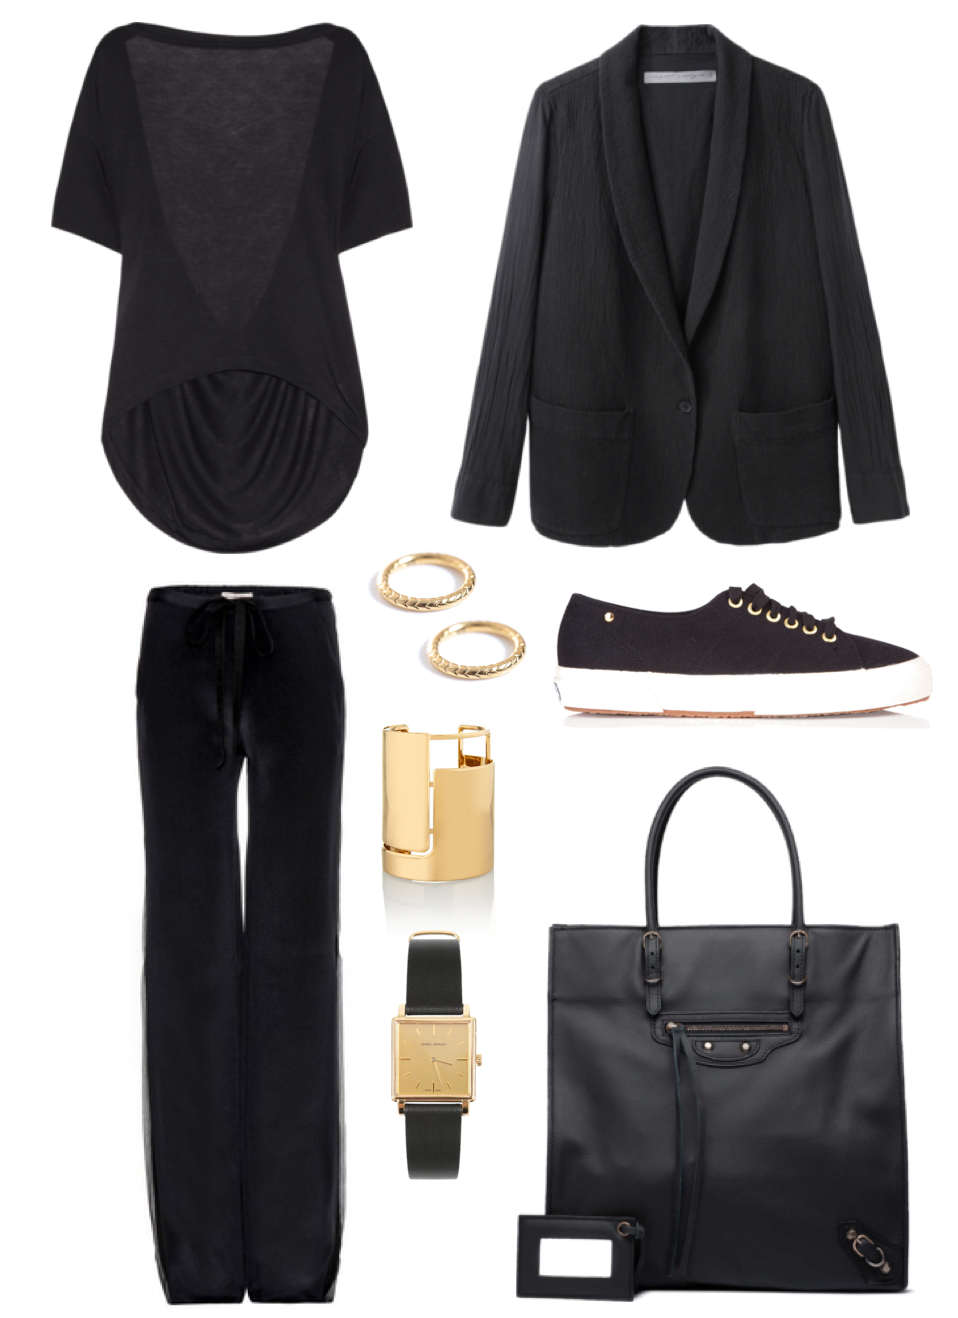 Casual cool - Balenciaga, The Row x Superga, Isabel Marant watch, Lanvin bracelet, Emilio Pucci trousers, Saint Laurent rings